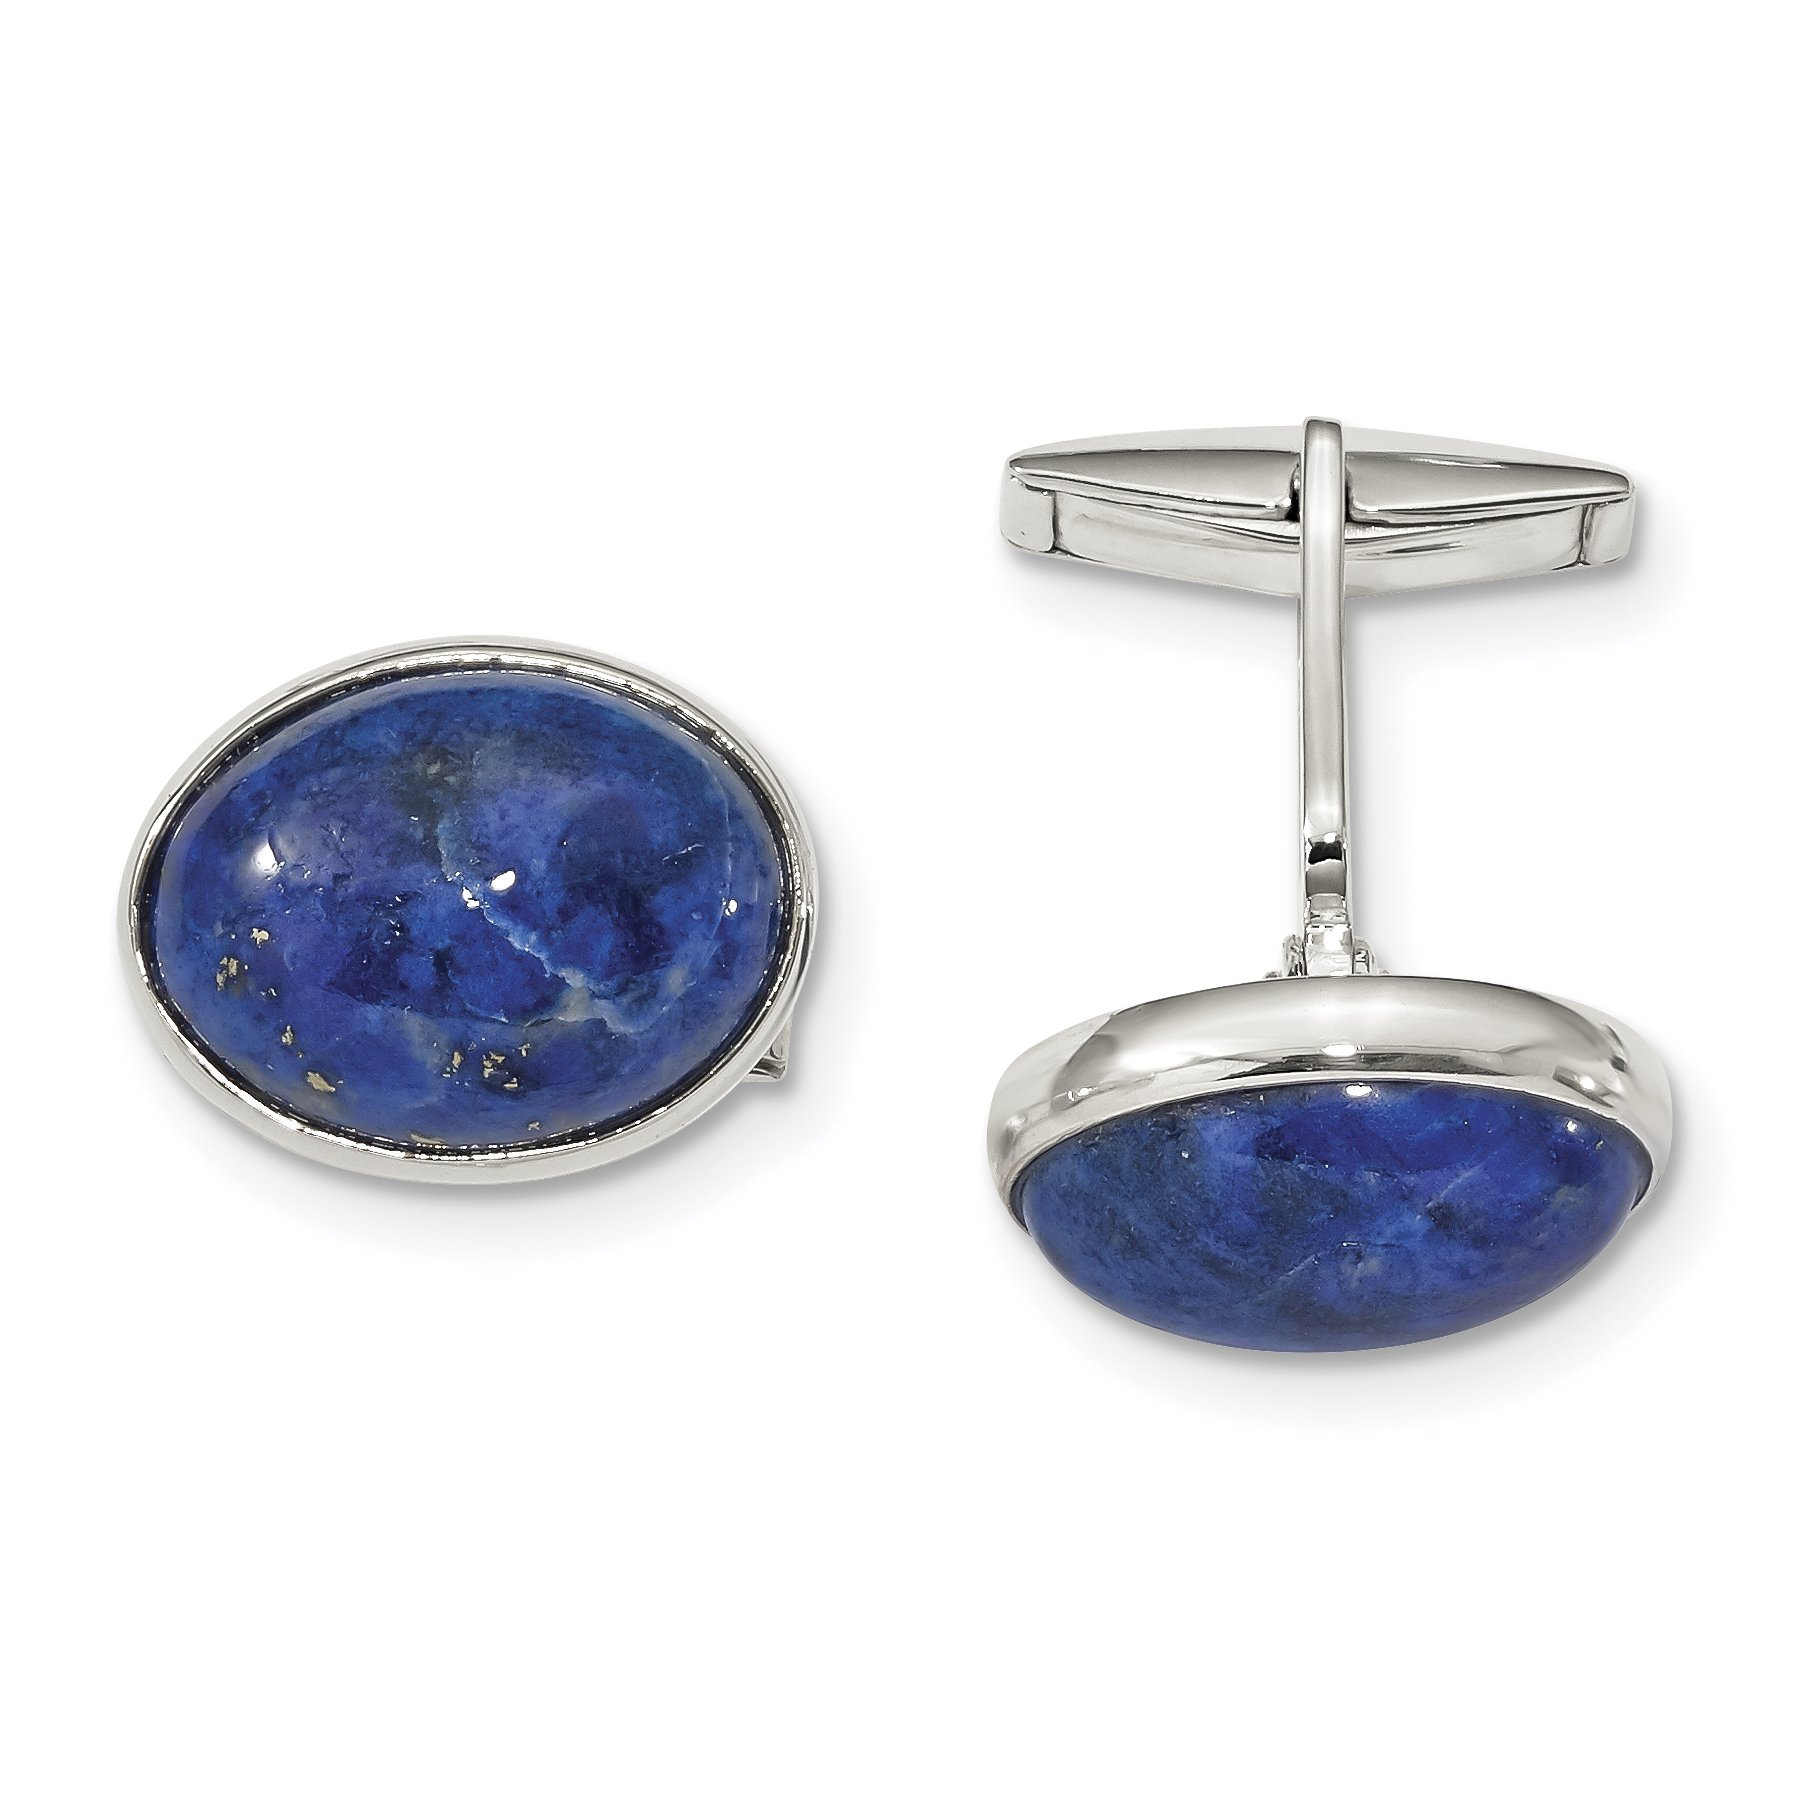 ICE CARATS 925 Sterling Silver Cabochon Lapis Cuff Links Mens Cufflinks Link Fine Jewelry Dad Mens Gift Set